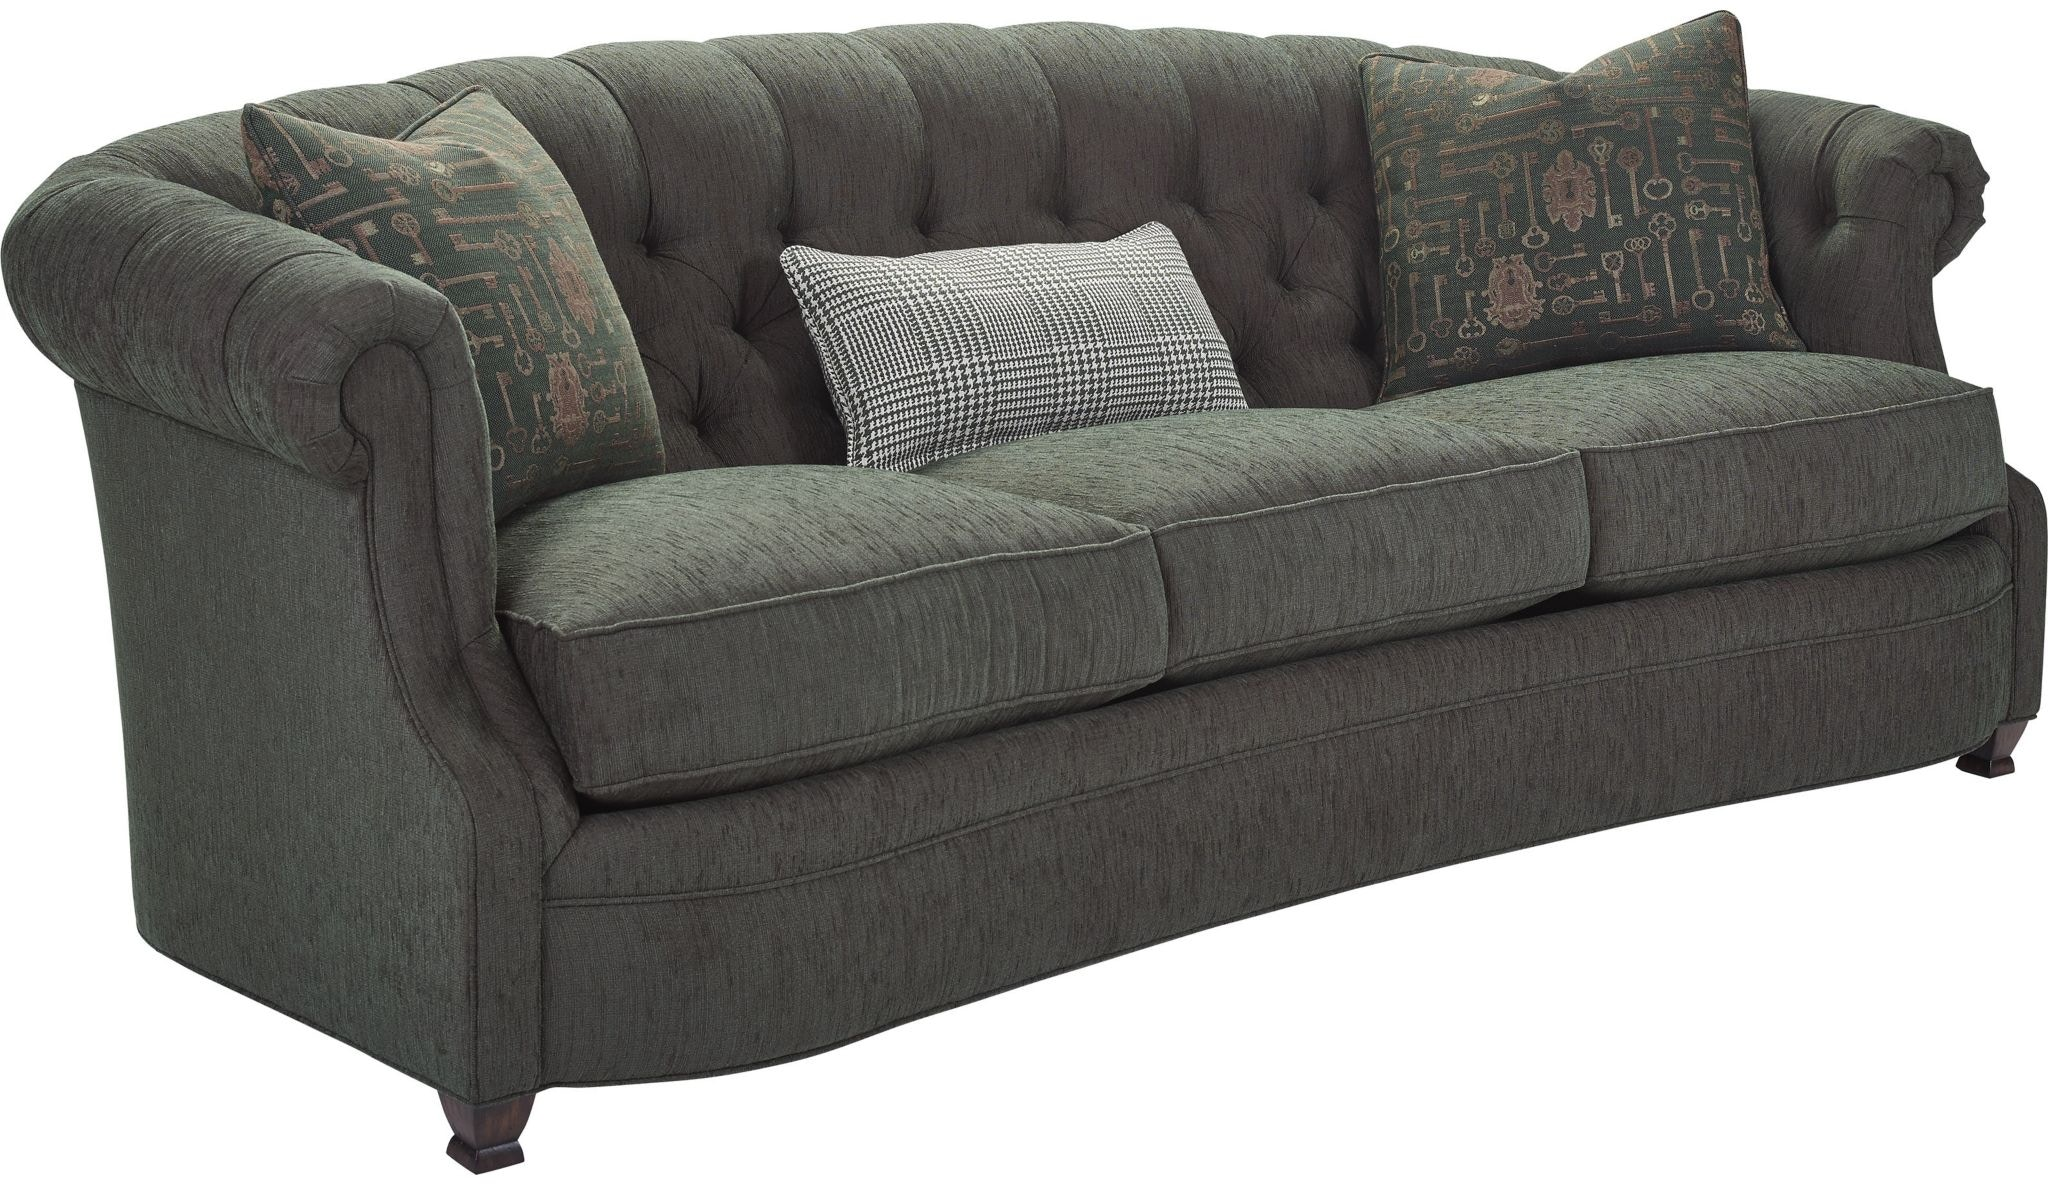 Thomasville Living Room Chevis Sofa 2531 11 Hamilton Sofa